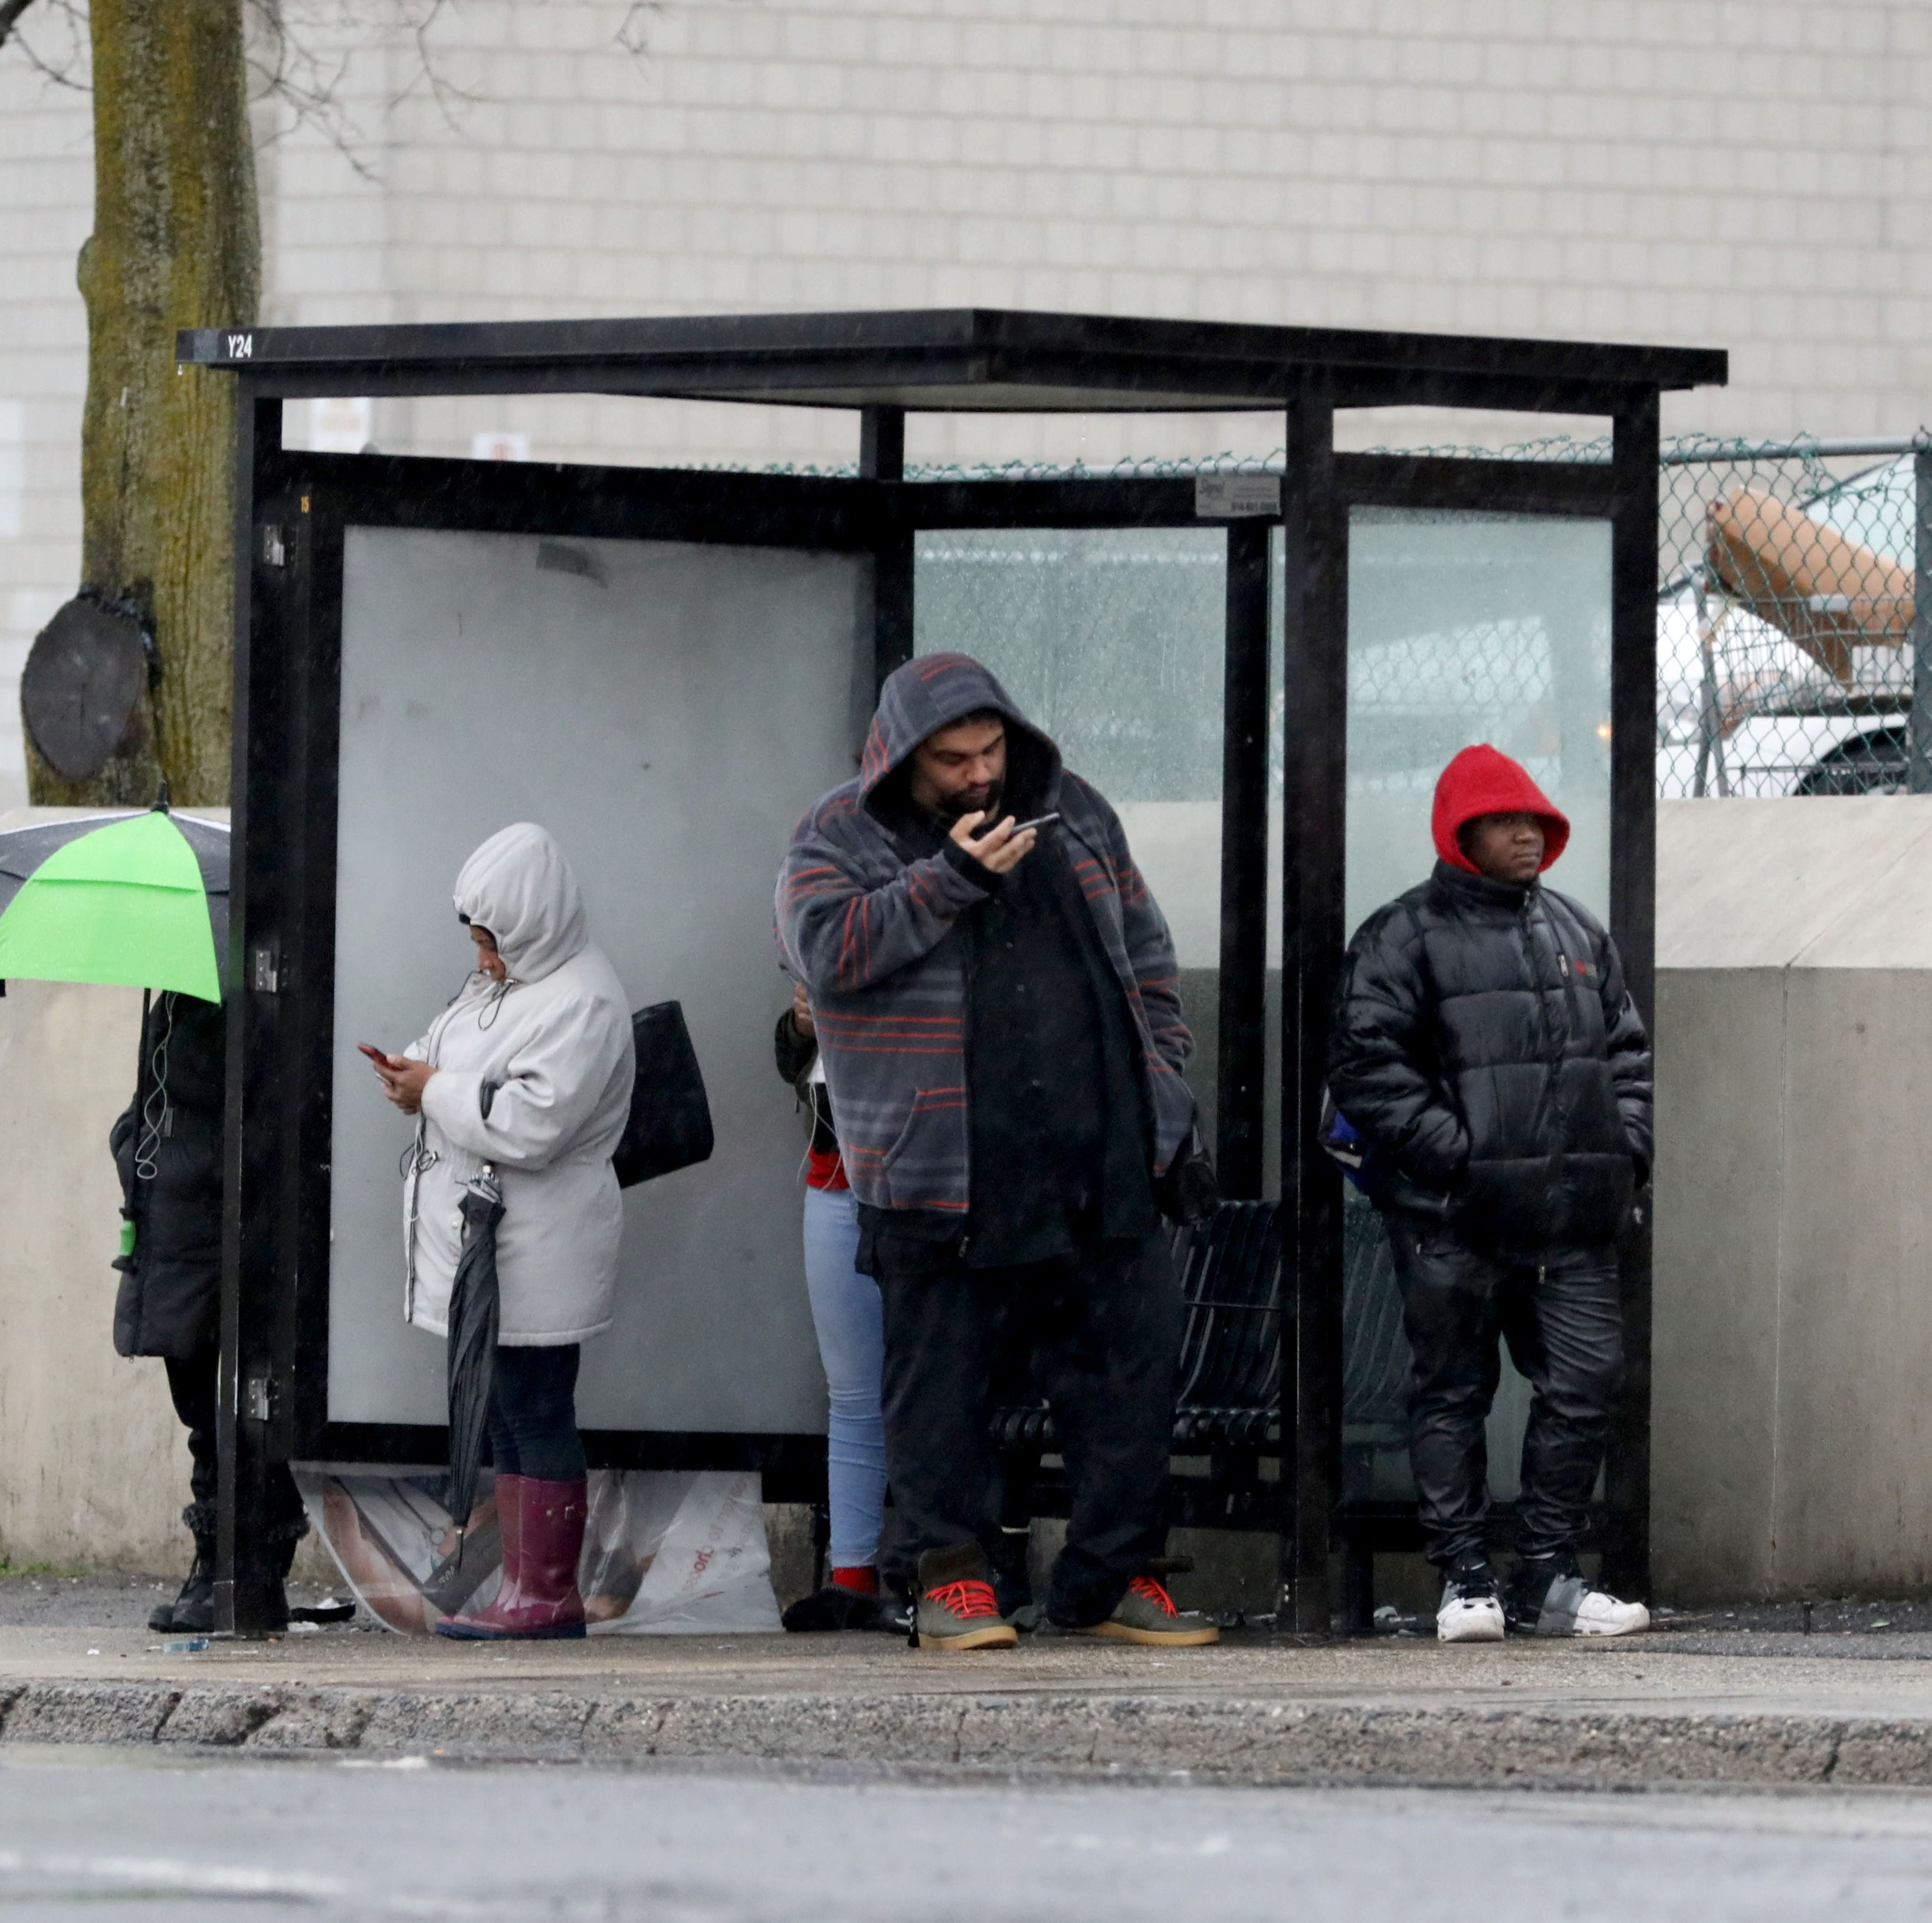 Bus commuters wait for the Bee Line bus as they stand in a bus shelter with umbrellas, on Central Park Avenue and McLean Avenue in Yonkers, Jan. 20, 2019. Southern Westchester experienced more rain than snow in this latest snowstorm.